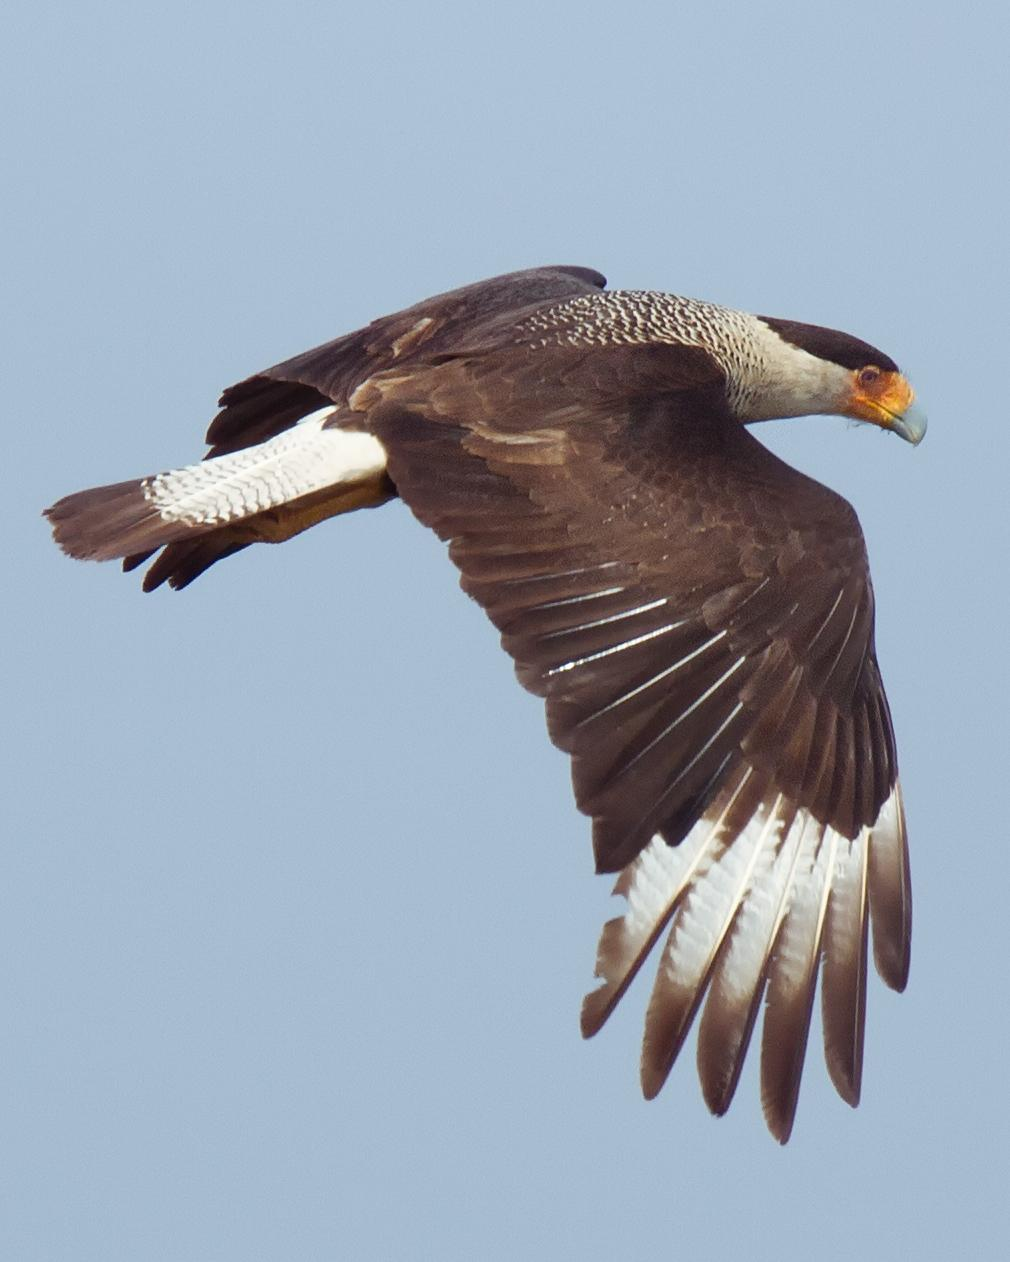 Crested Caracara Photo by JC Knoll